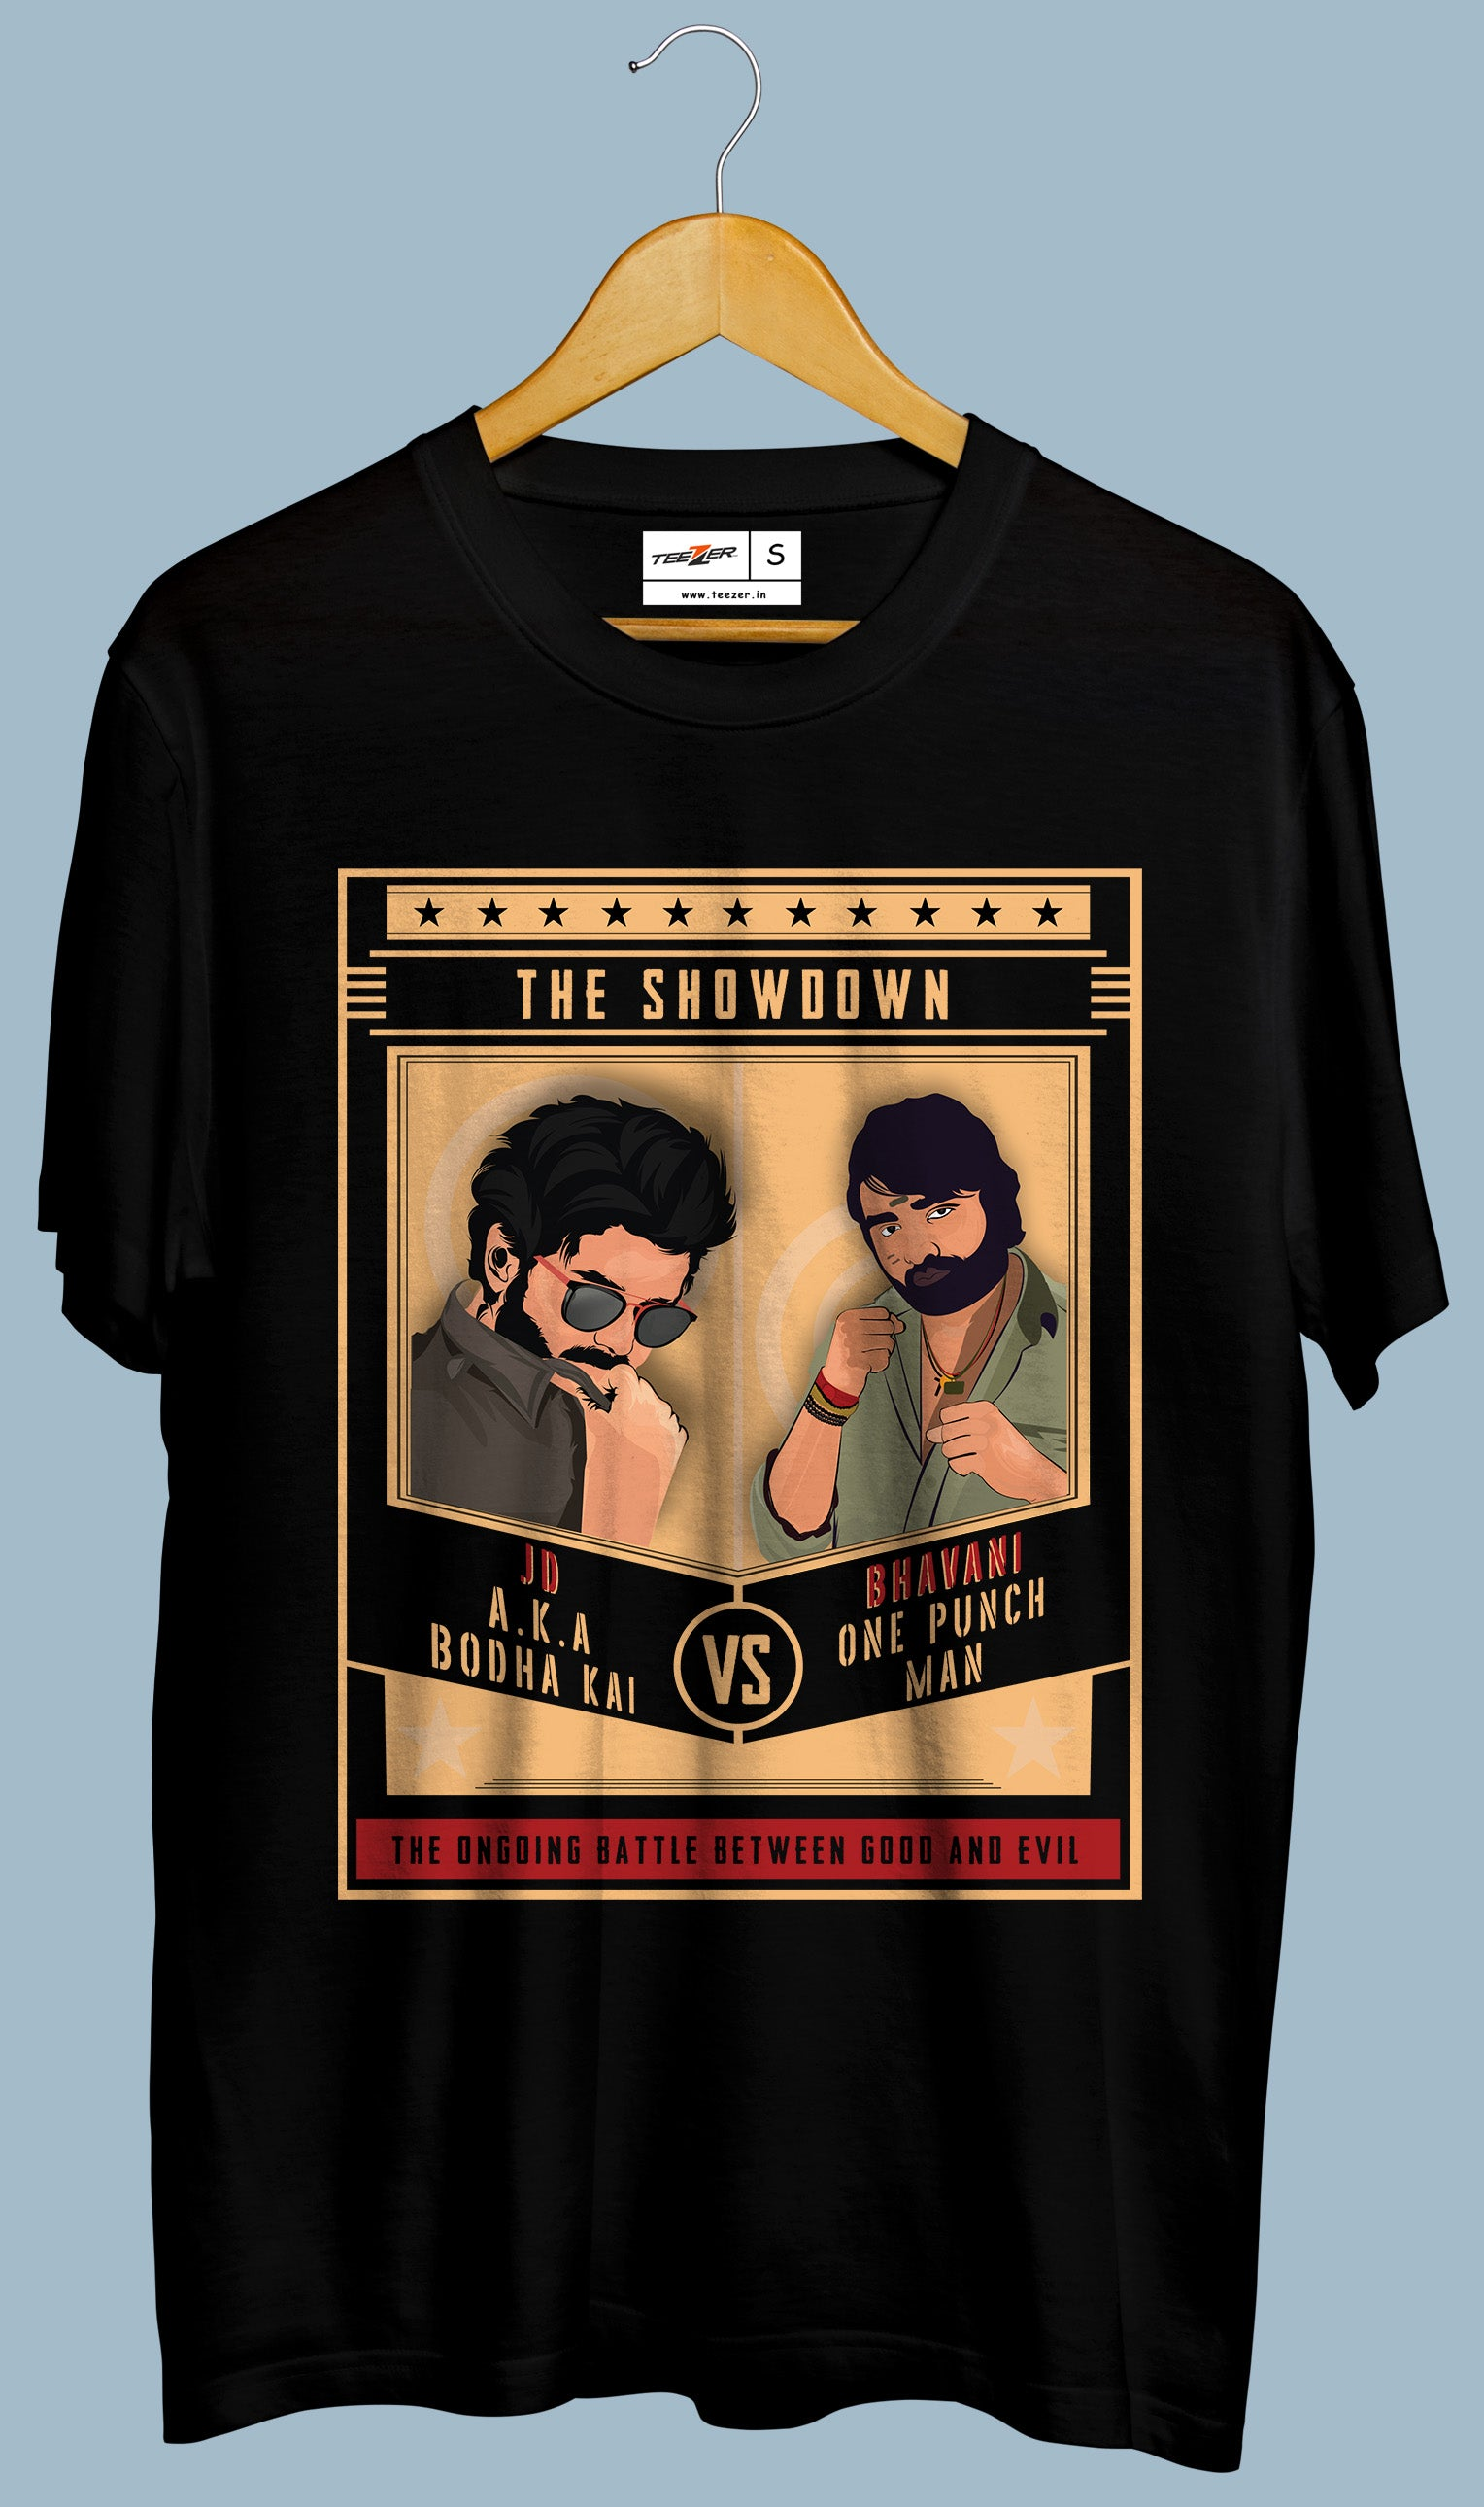 JD vs Bhavani - T-shirt